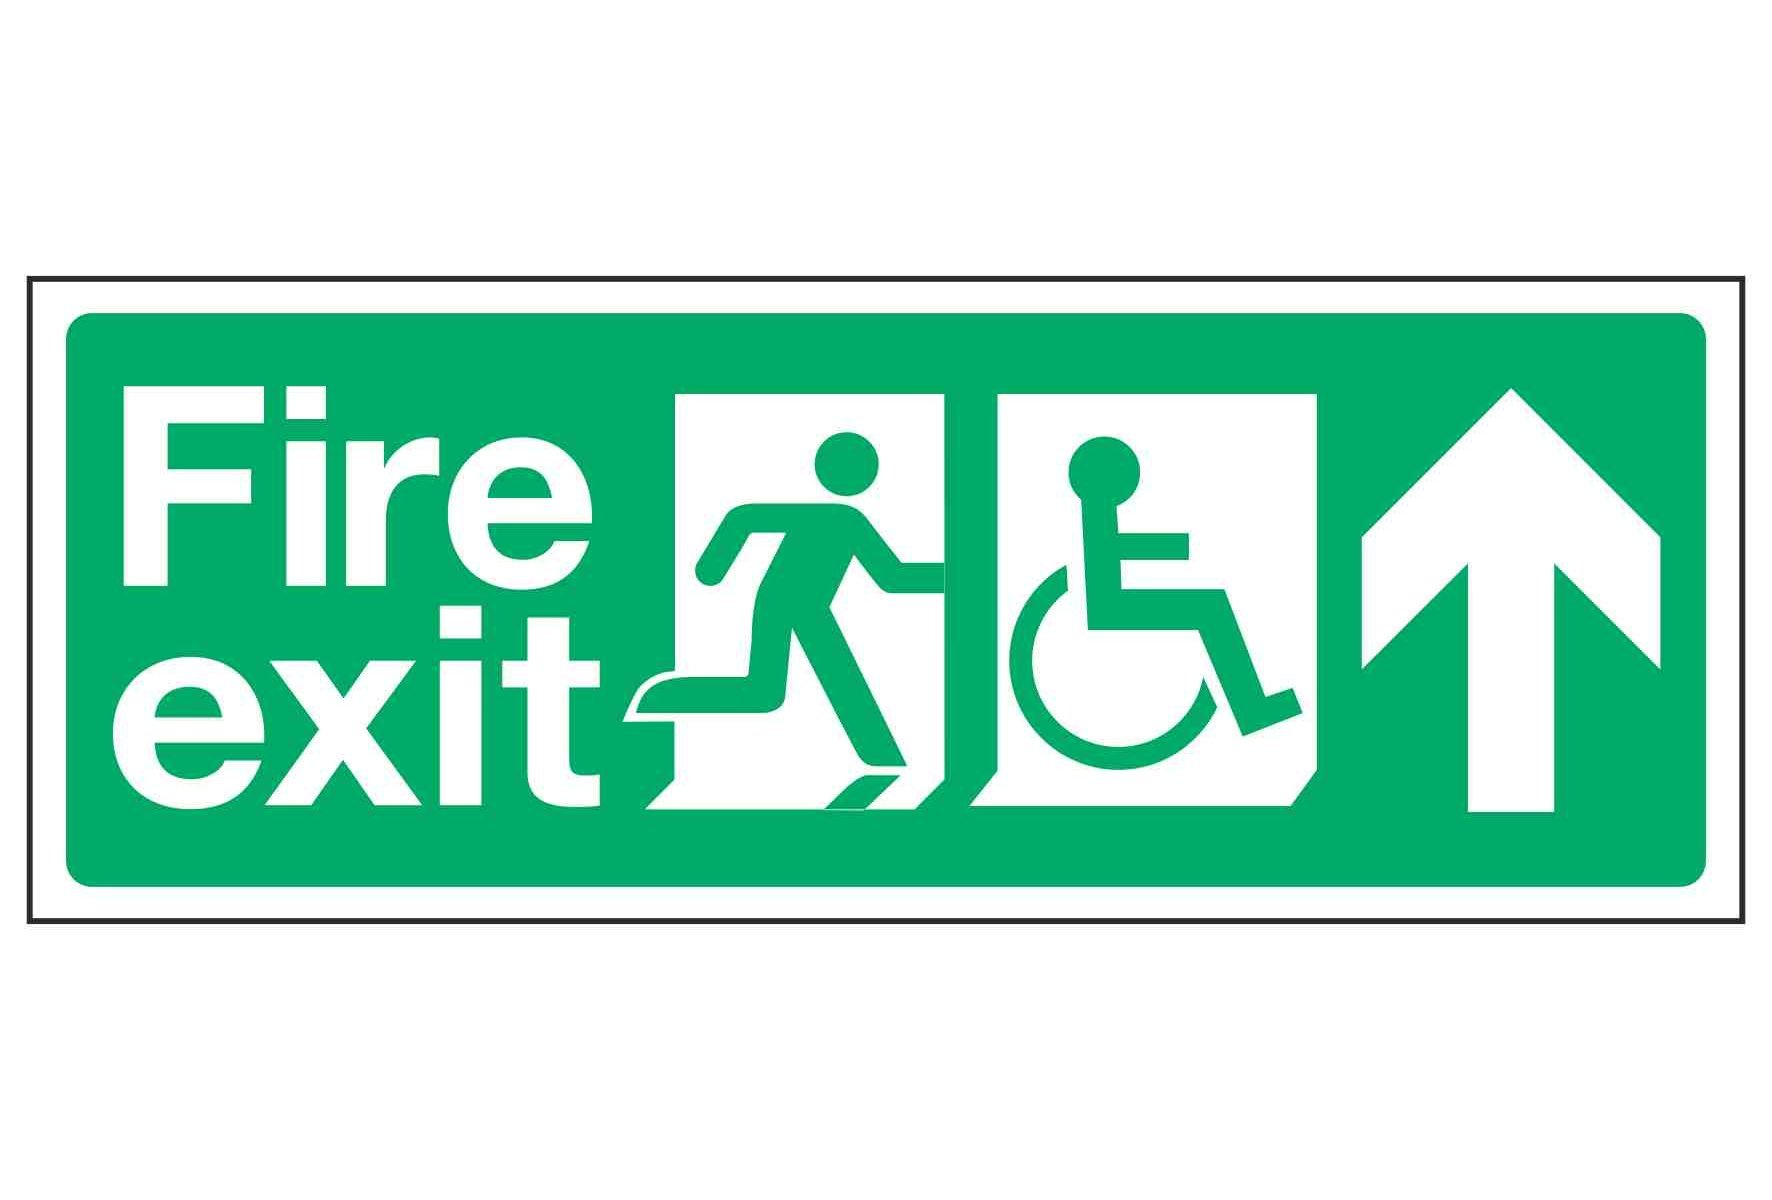 Fire exit / Disabled (Arrow Up)